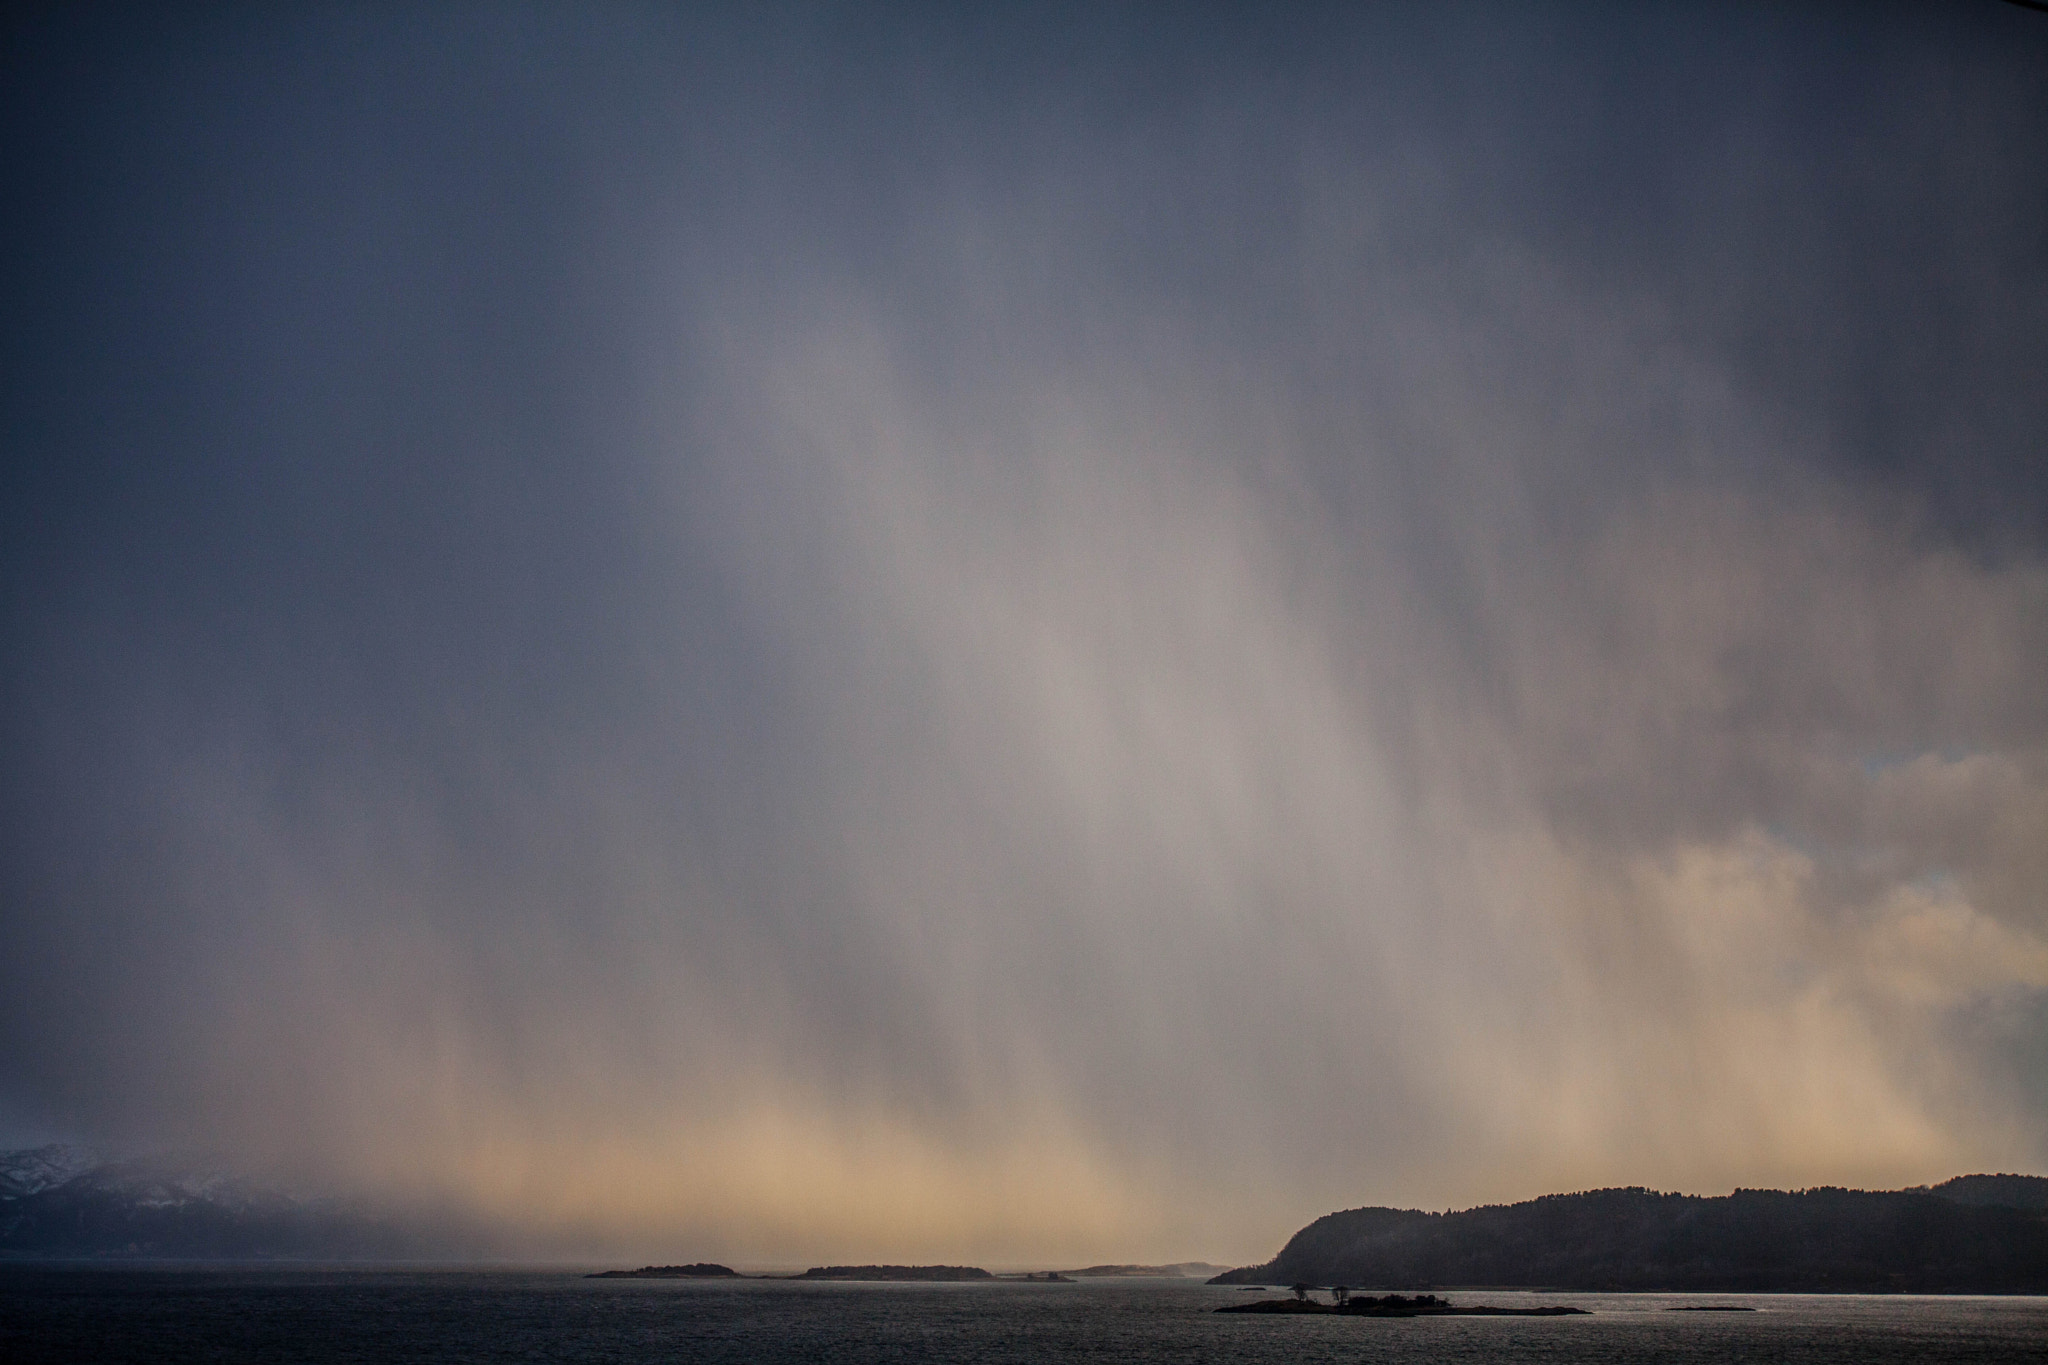 Photograph Special weather by Hans-Erling Hanssen on 500px